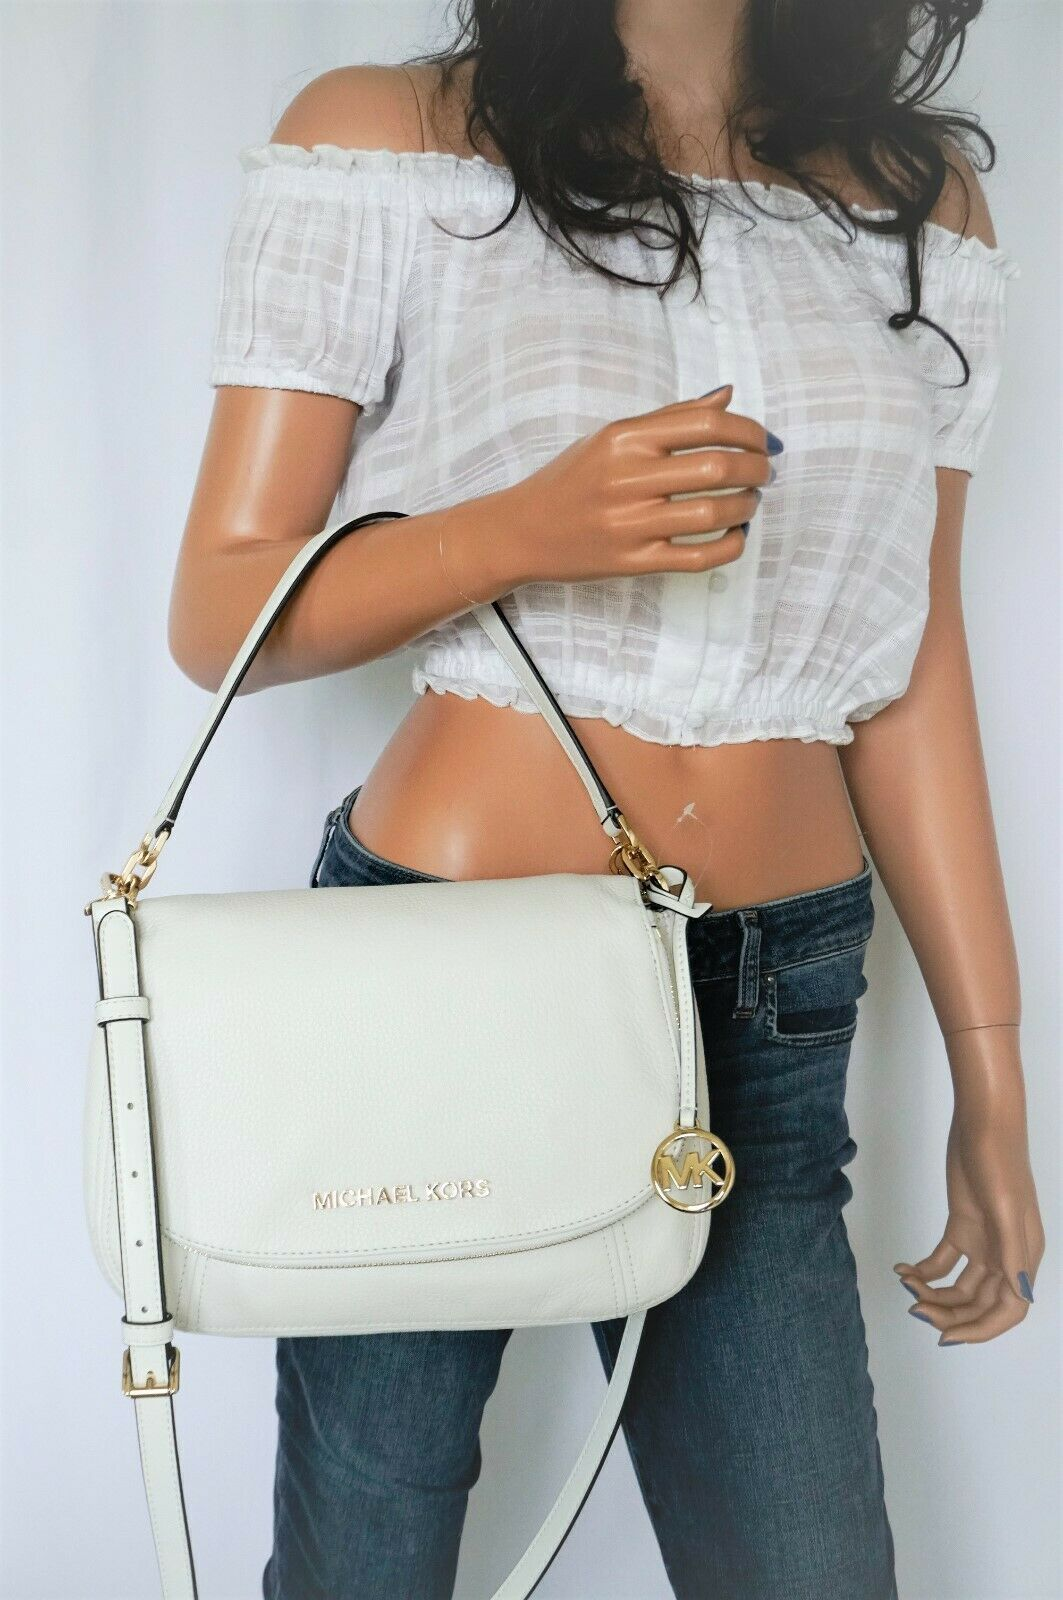 Primary image for Michael Kors Bedford M Convertible Pebbled Leather Shoulder Bag Optic White/Gold